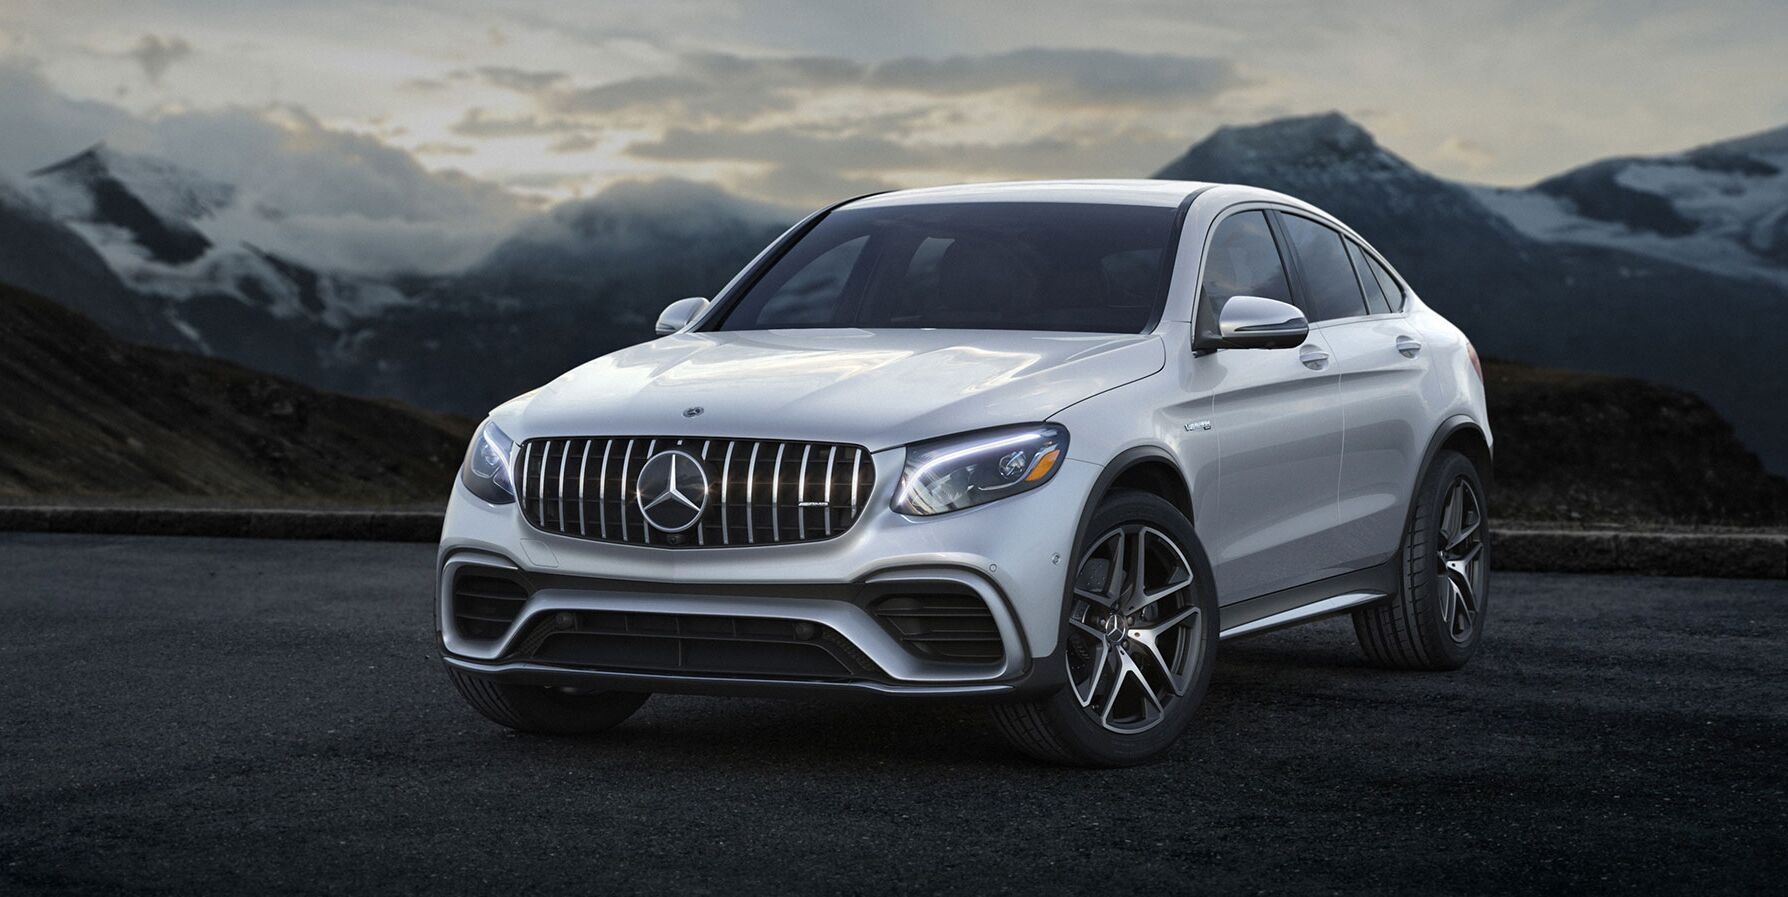 2019 GLC AMG 43 Coupe